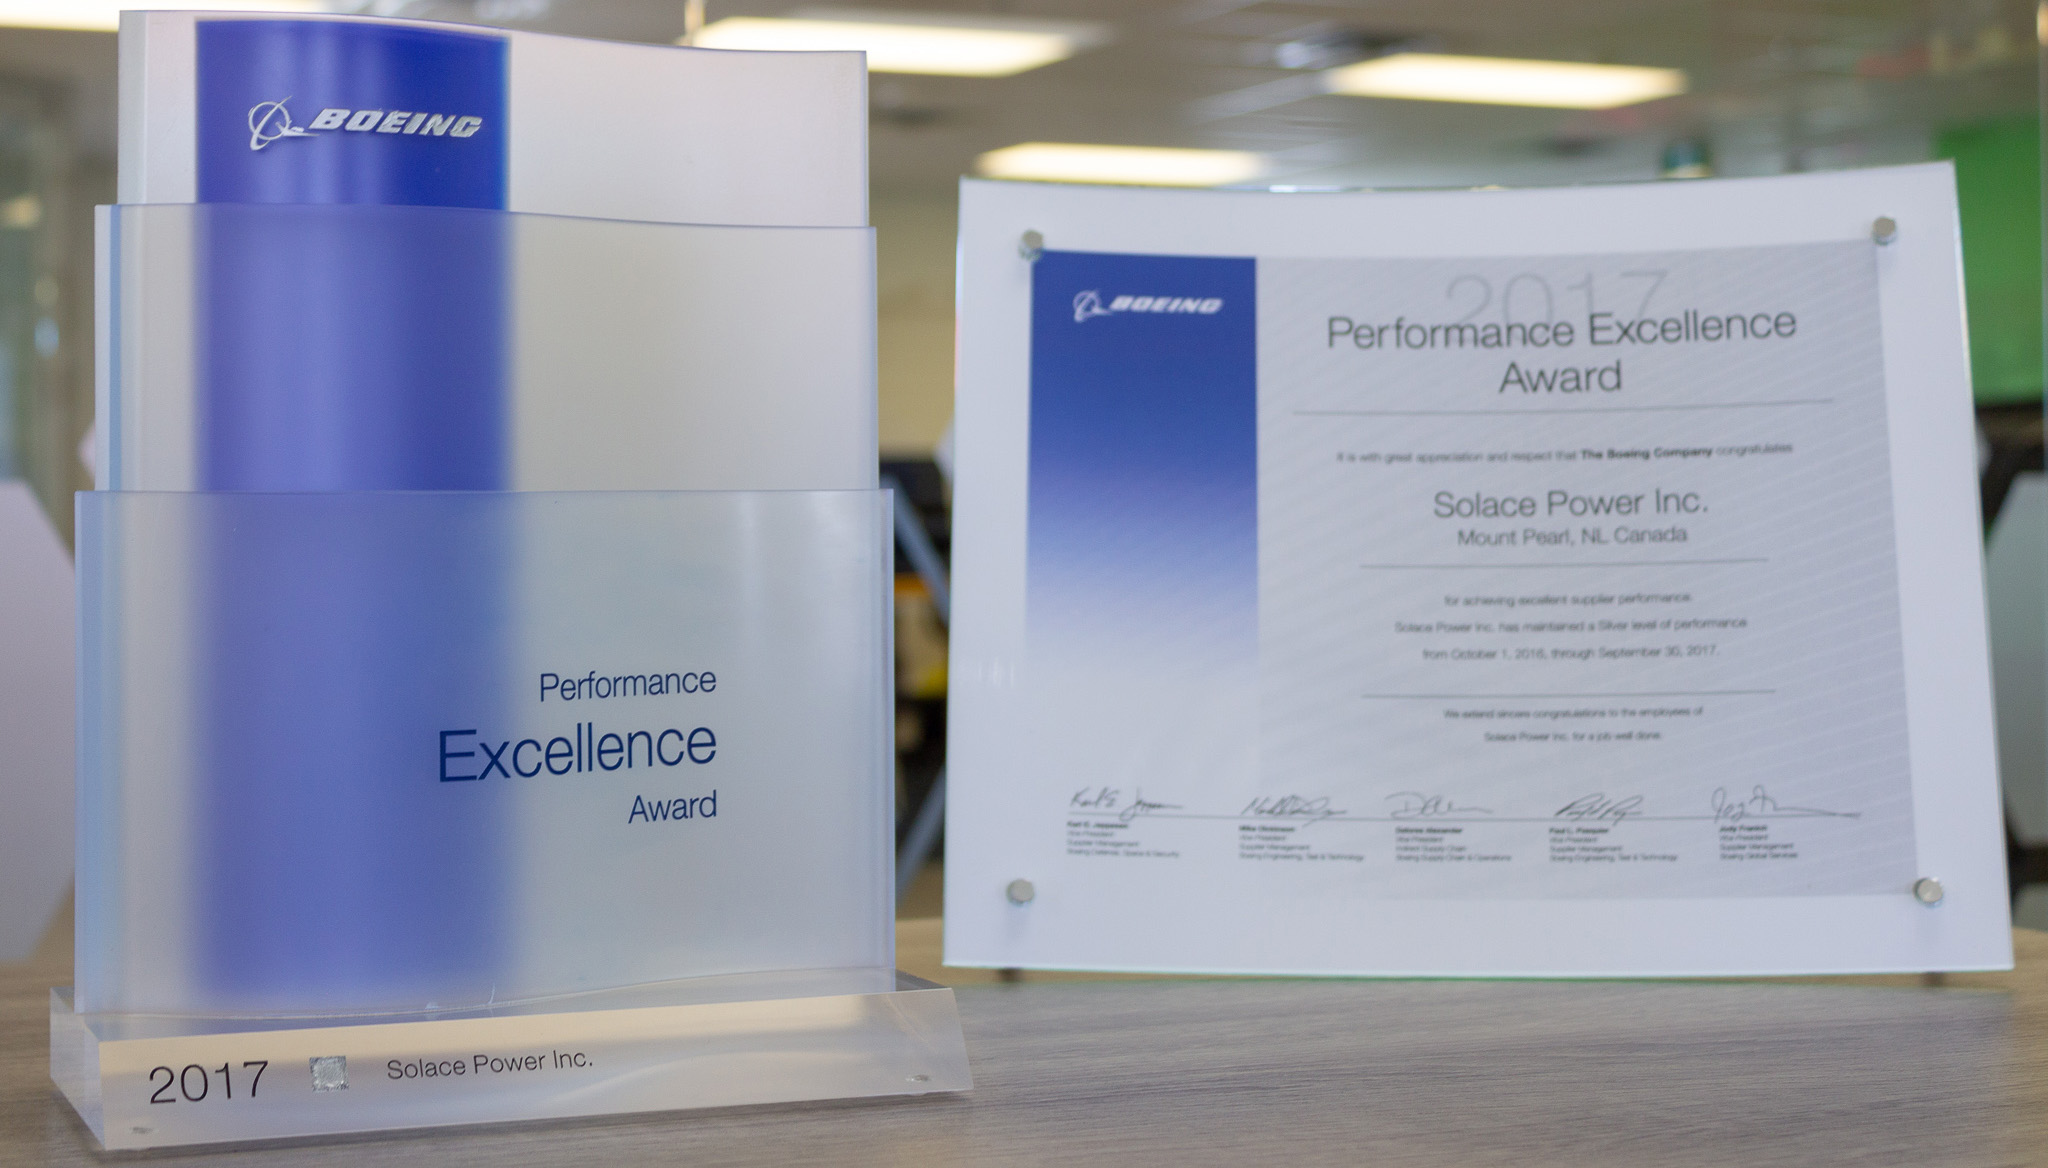 2017 Boeing Silver Supplier Performance Excellence Award. 1 of 329 winners selected from 13,000 suppliers.